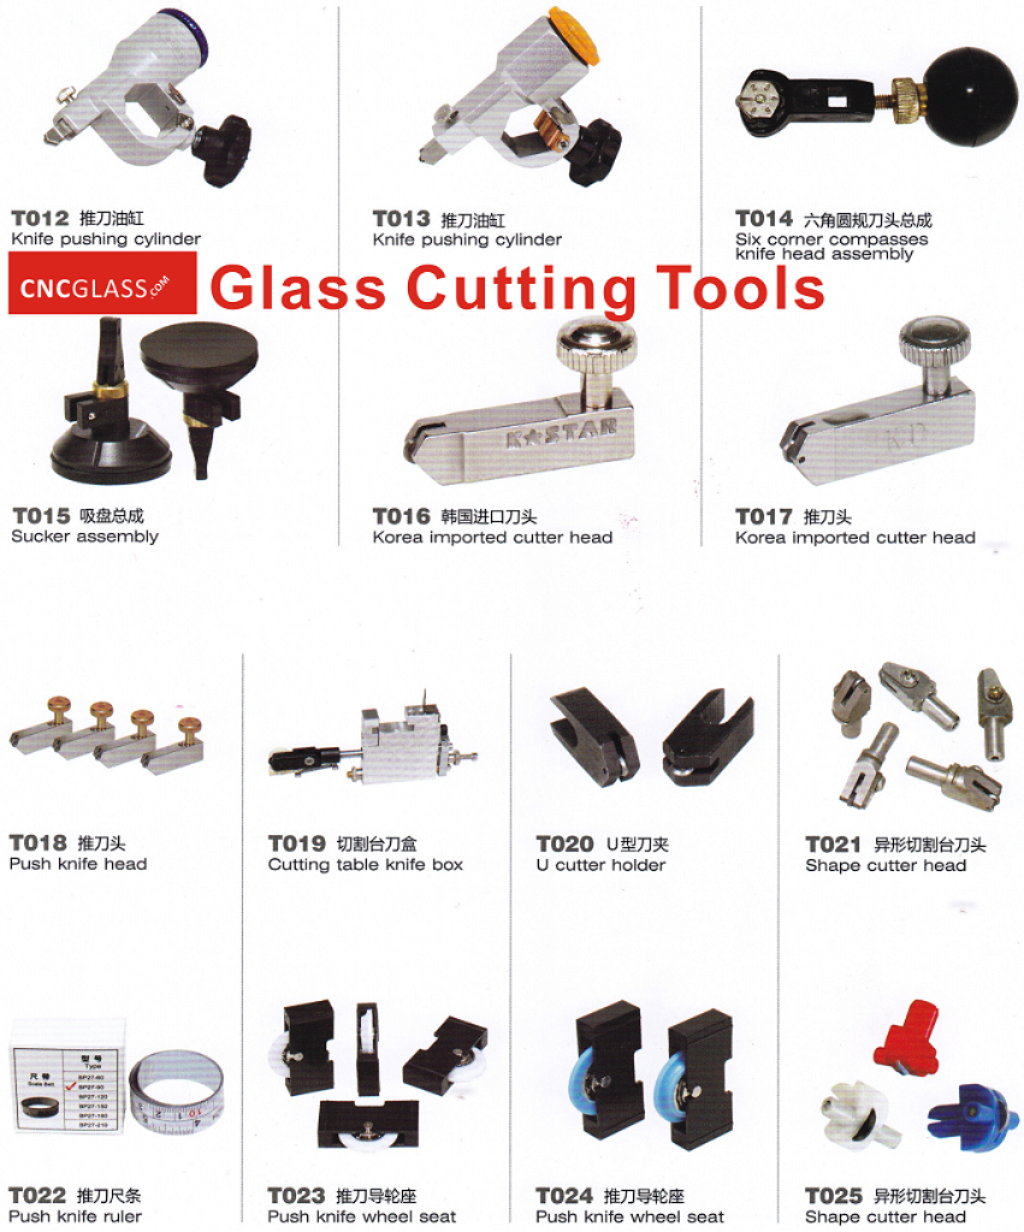 Glass Cutting Tools 2